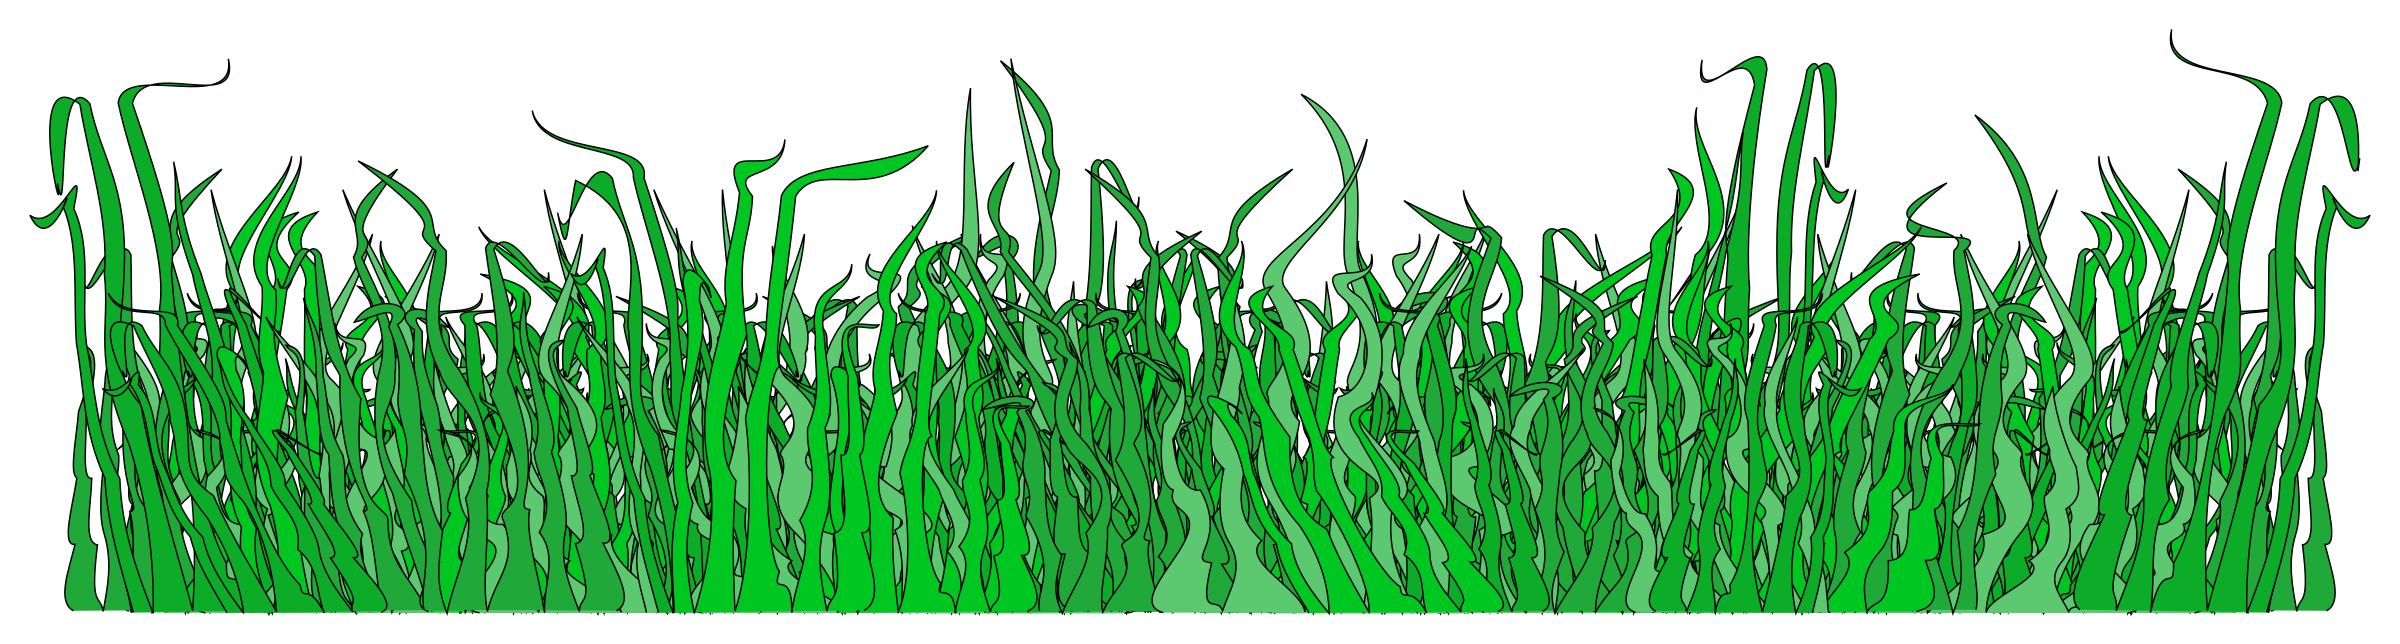 Clipart grass pdf. For the lawn big